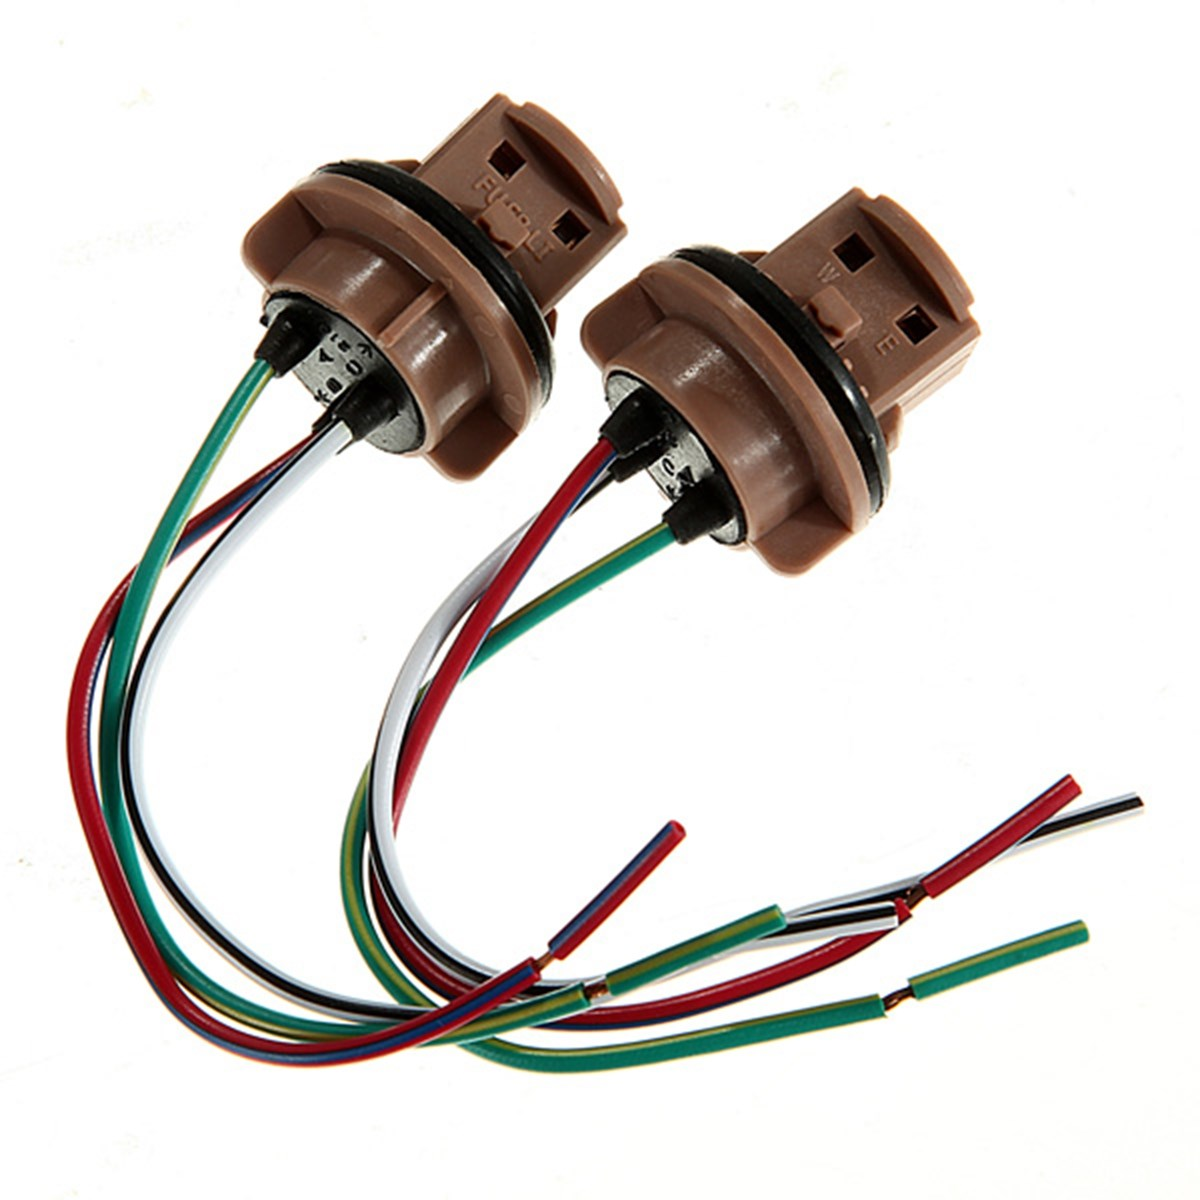 2x 7440 7443 T20 LED Lead Stereo Radio Wiring Harness Connector Socket Adaptor Brake Light Cable 2x 7440 7443 t20 led lead stereo radio wiring harness connector Wiring Harness Diagram at soozxer.org